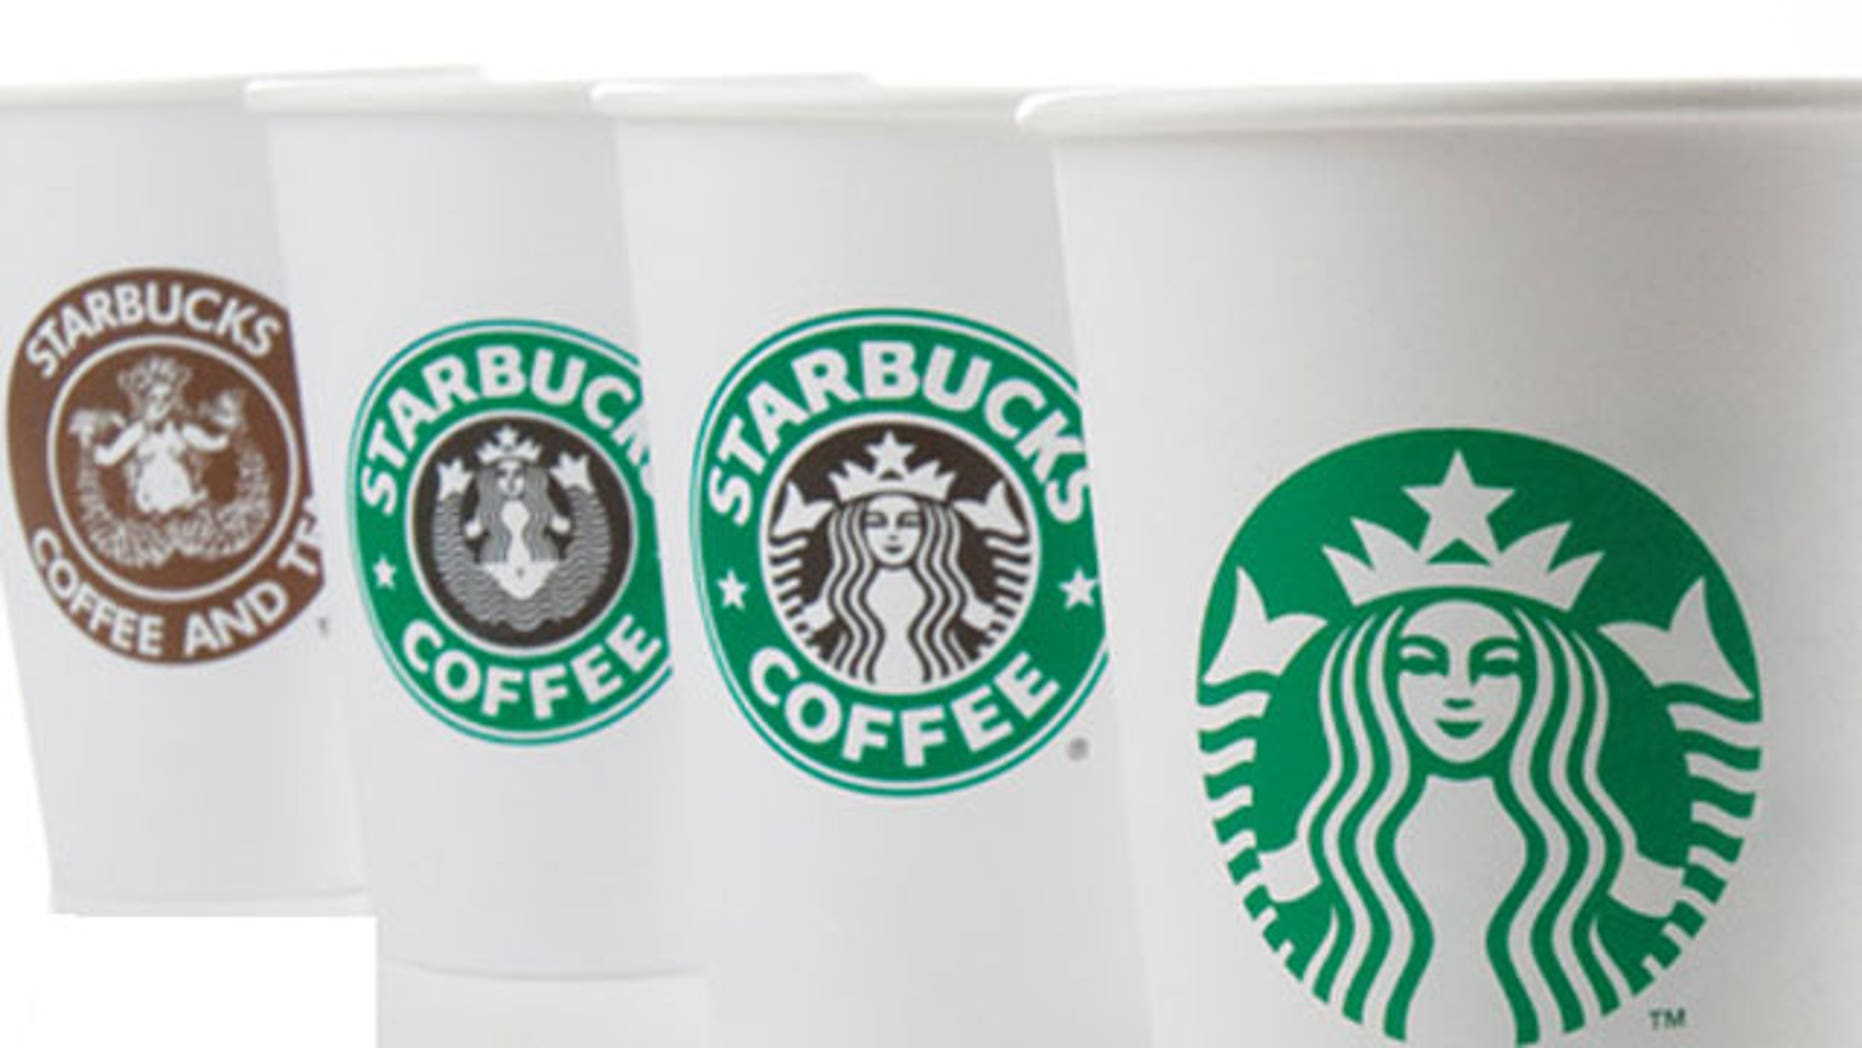 Starbucks To Roll Out Biggest Drink Size Yet Fox News